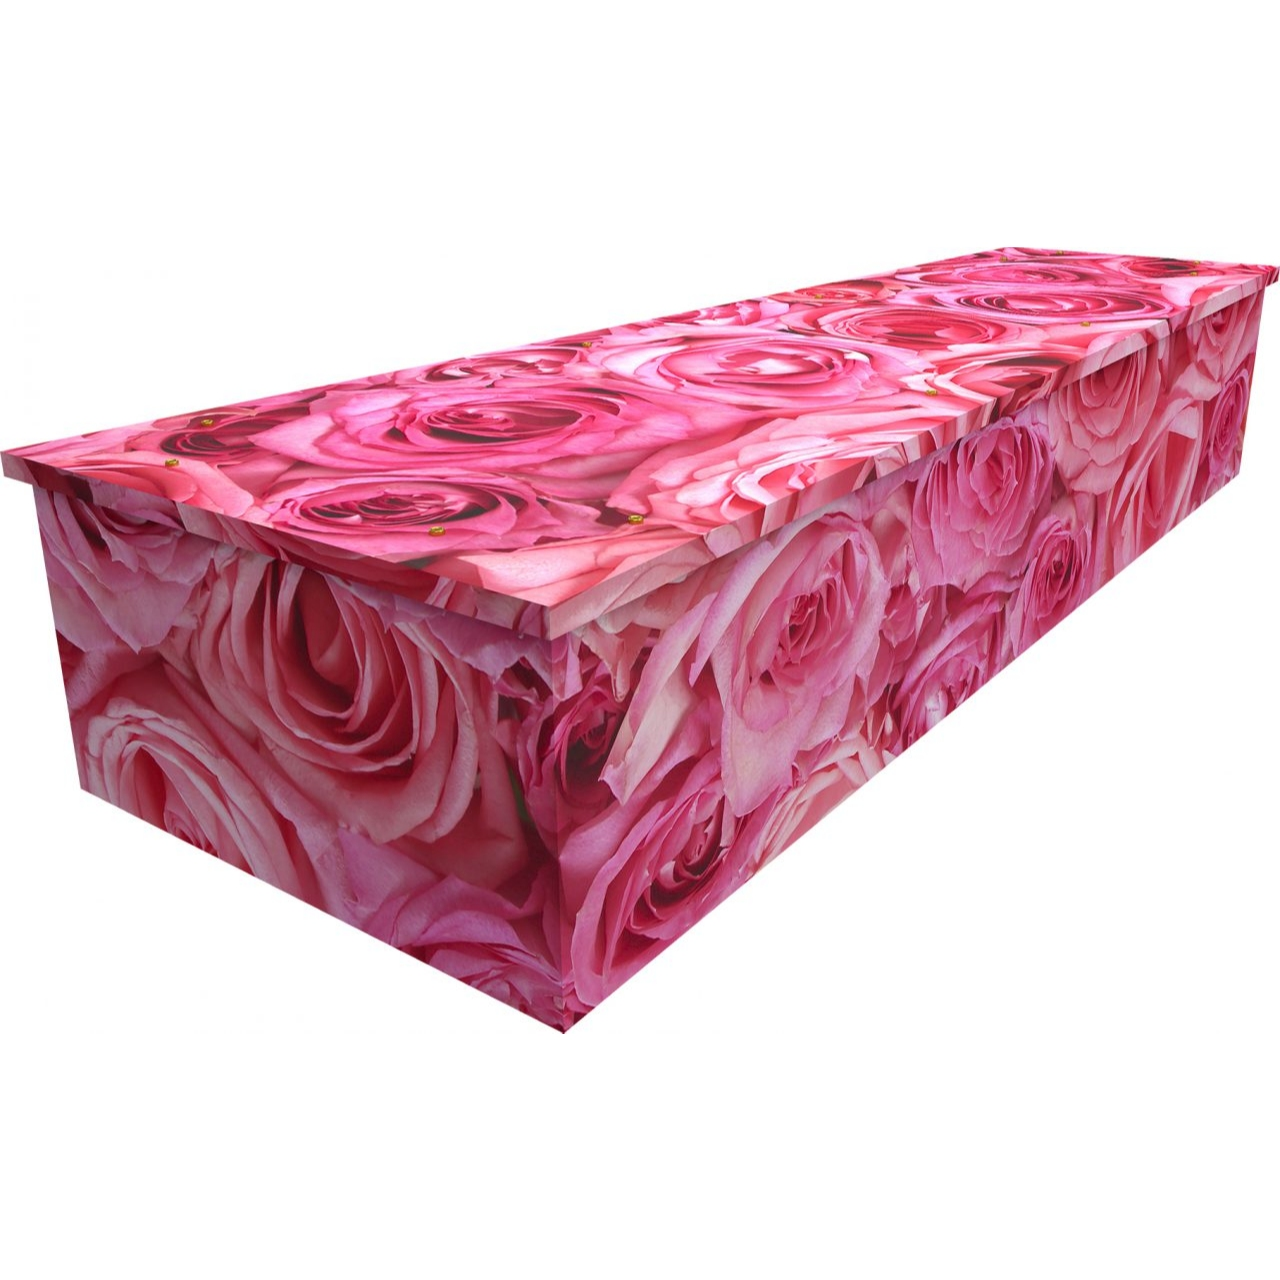 Pink Rose Cardboard Coffin